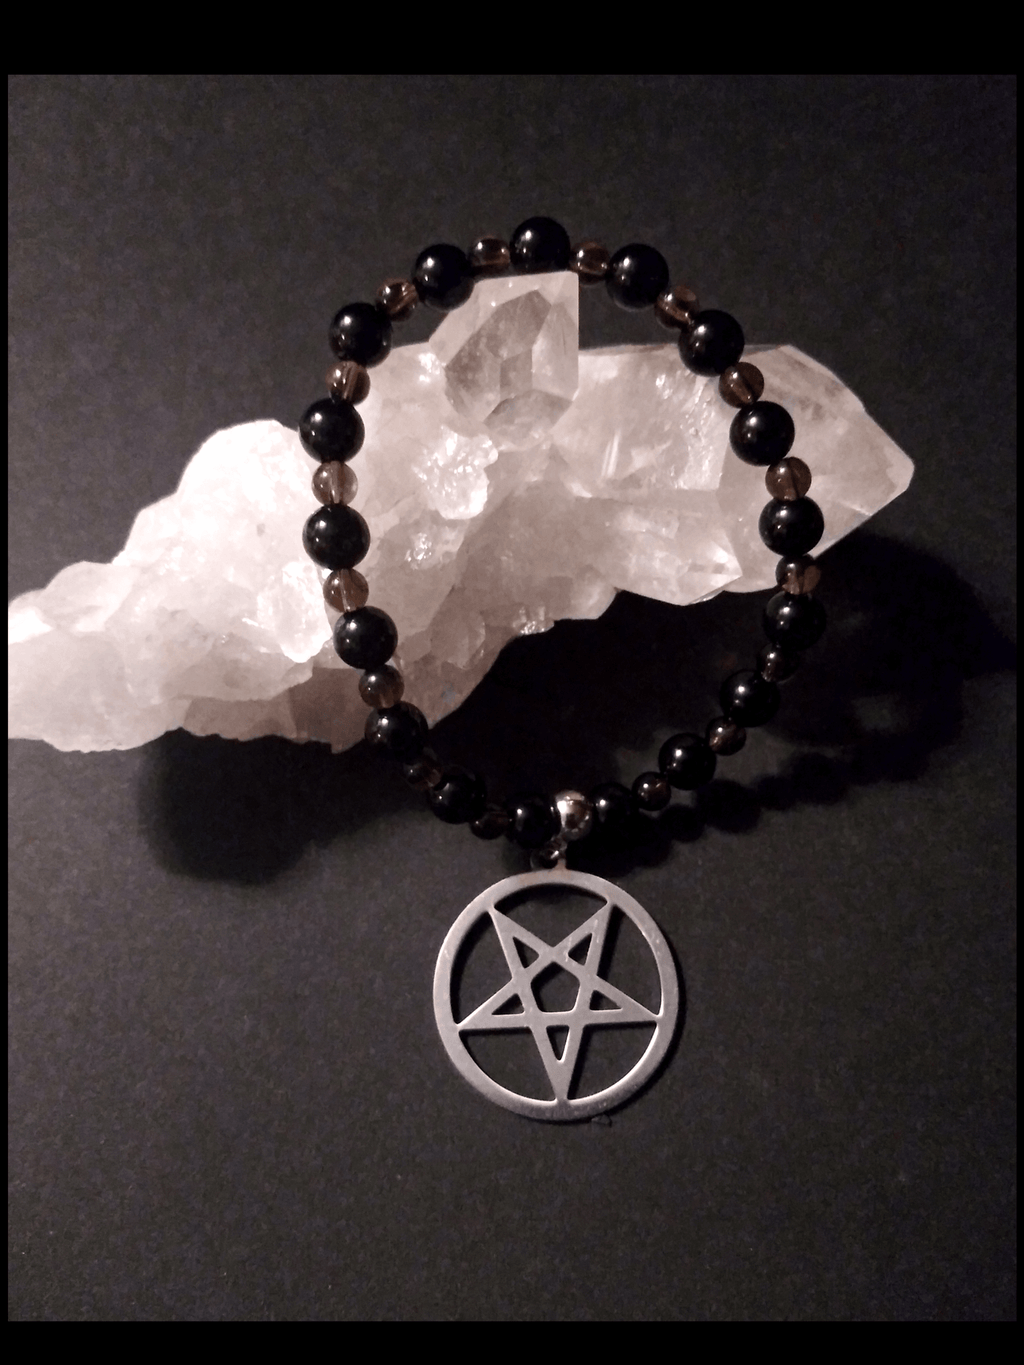 Smoky Quartz & Onyx Gemstone Pentagram Sigil Bracelet Jewelry